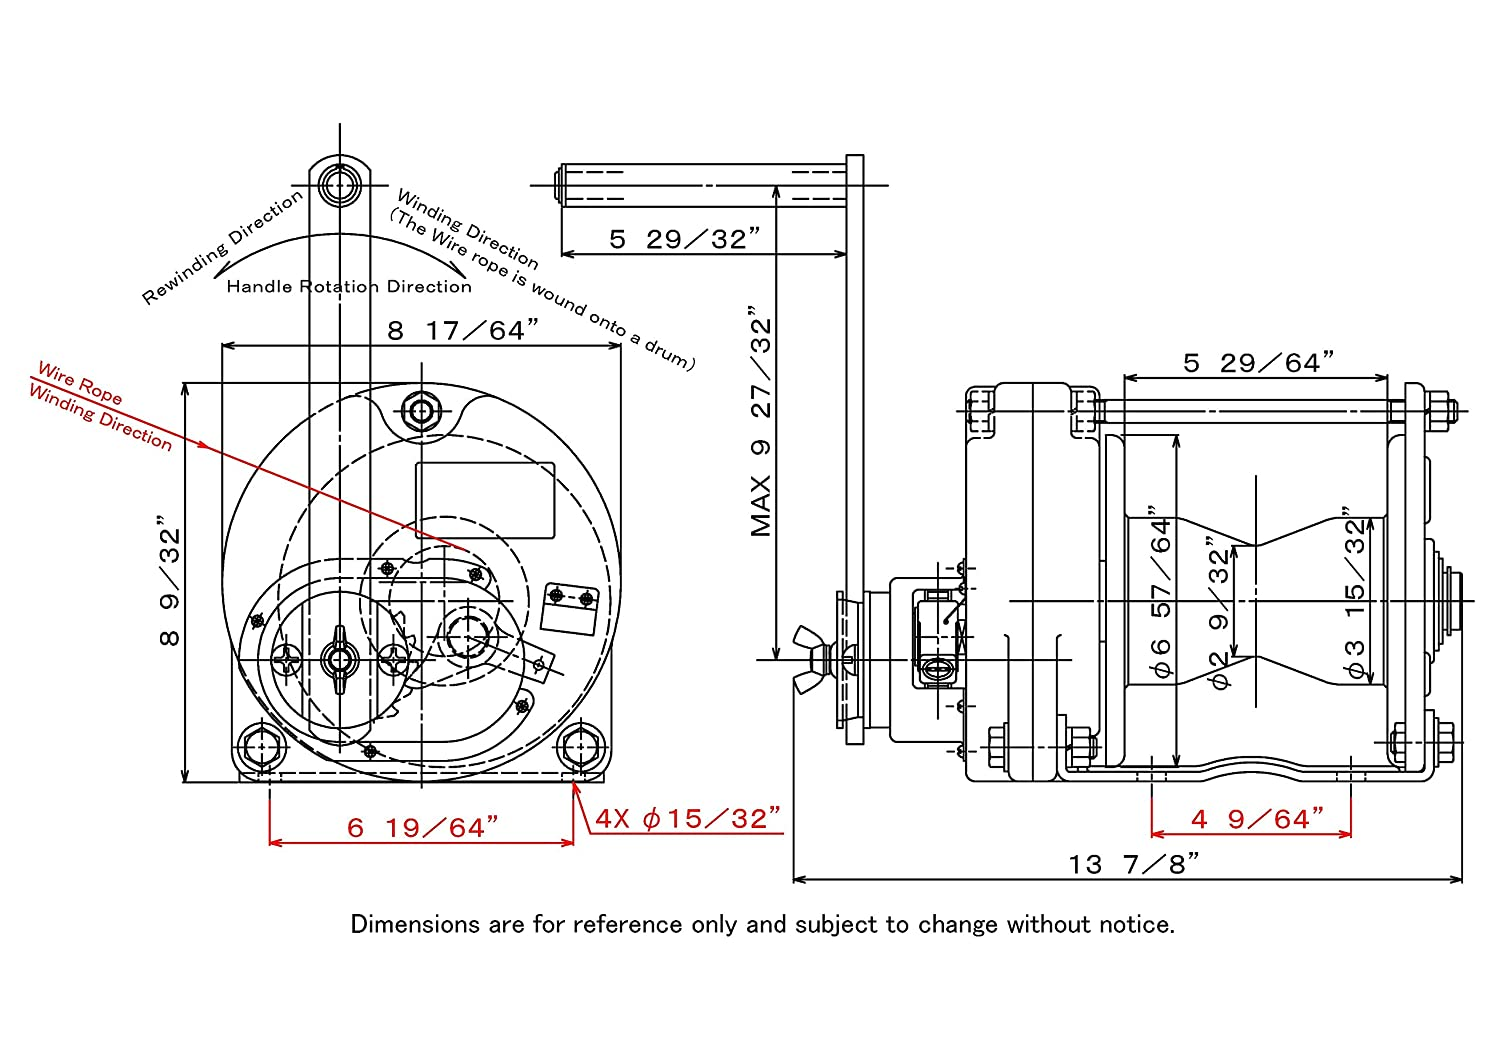 Maxpull Steel Capstan Drum Spur Gear Heavy Duty Hand Jacobsen Golf Cart Wiring Diagram Manual Winch With Automatic Brake 1100 Lbs 500 Kg Capacity Without Cable Or Wire Rope